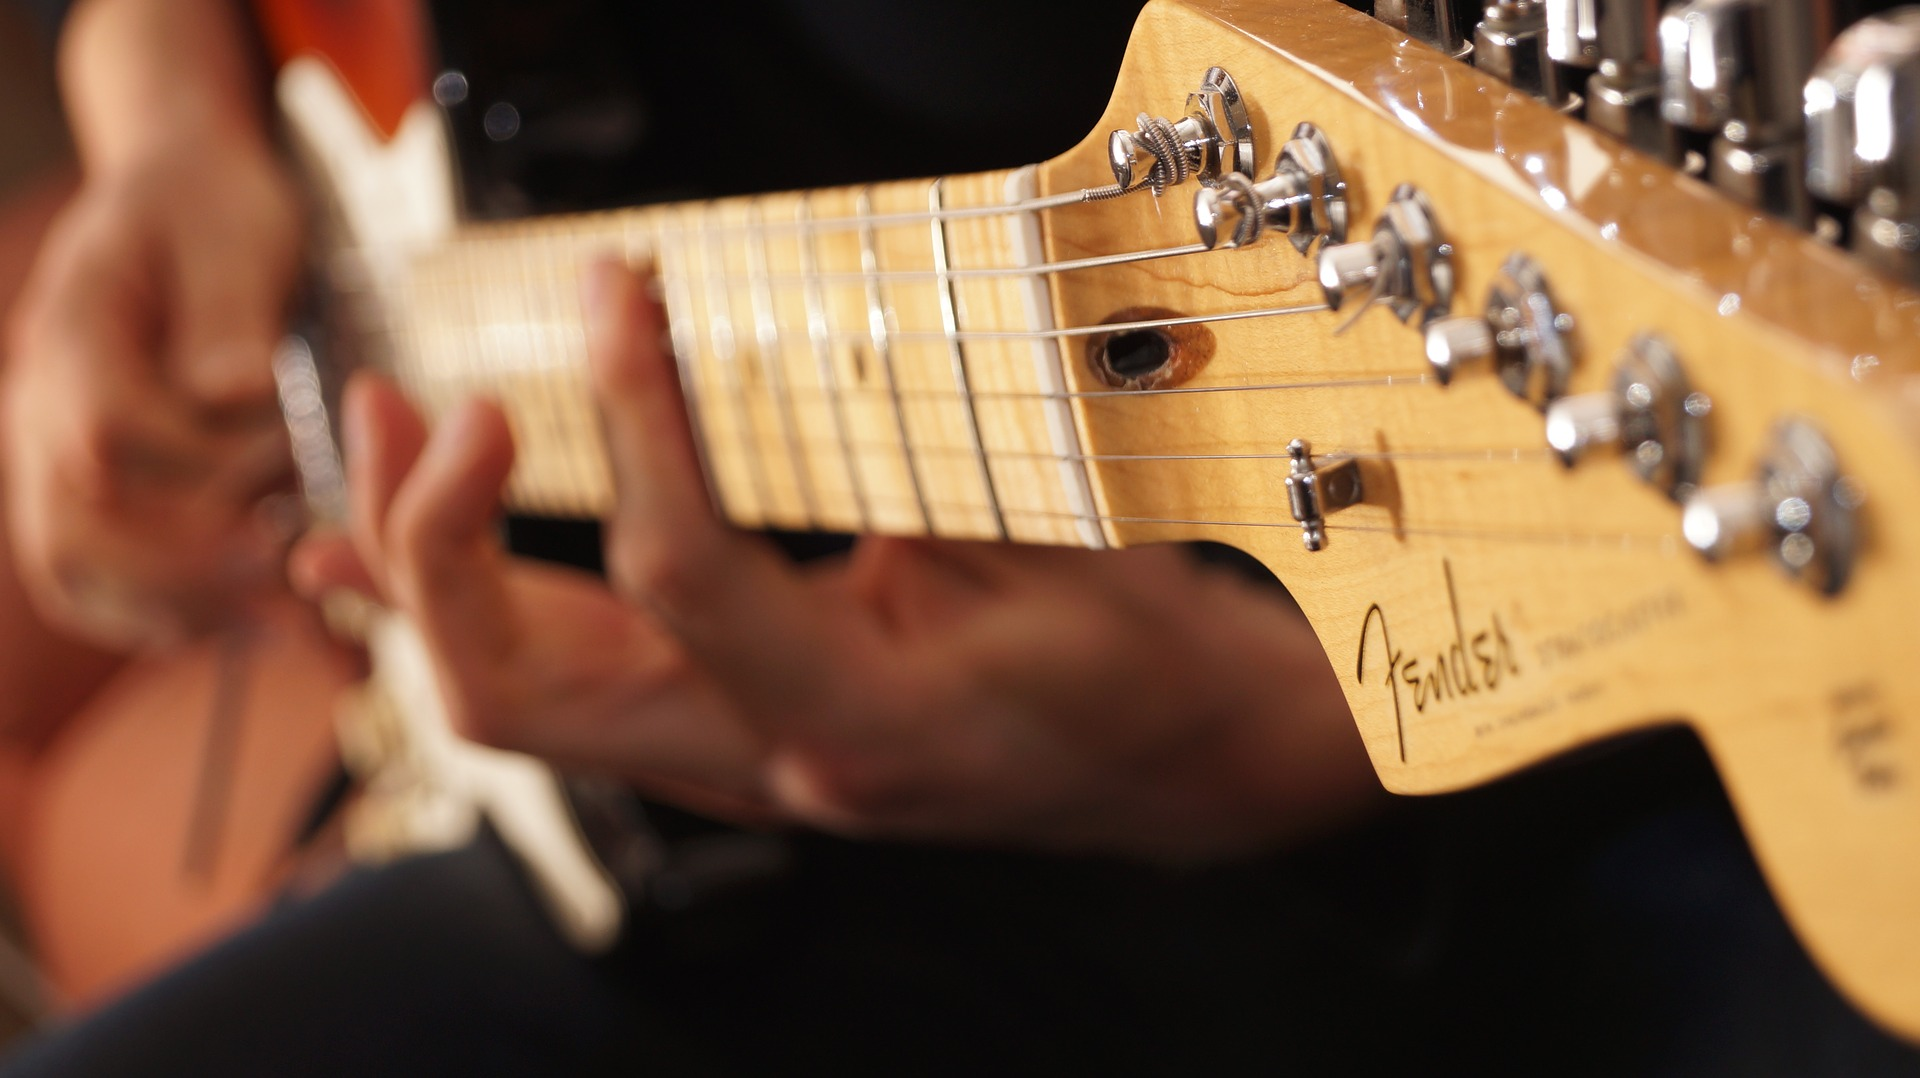 https://pixabay.com/photos/fender-stratocaster-guitar-player-2409274/